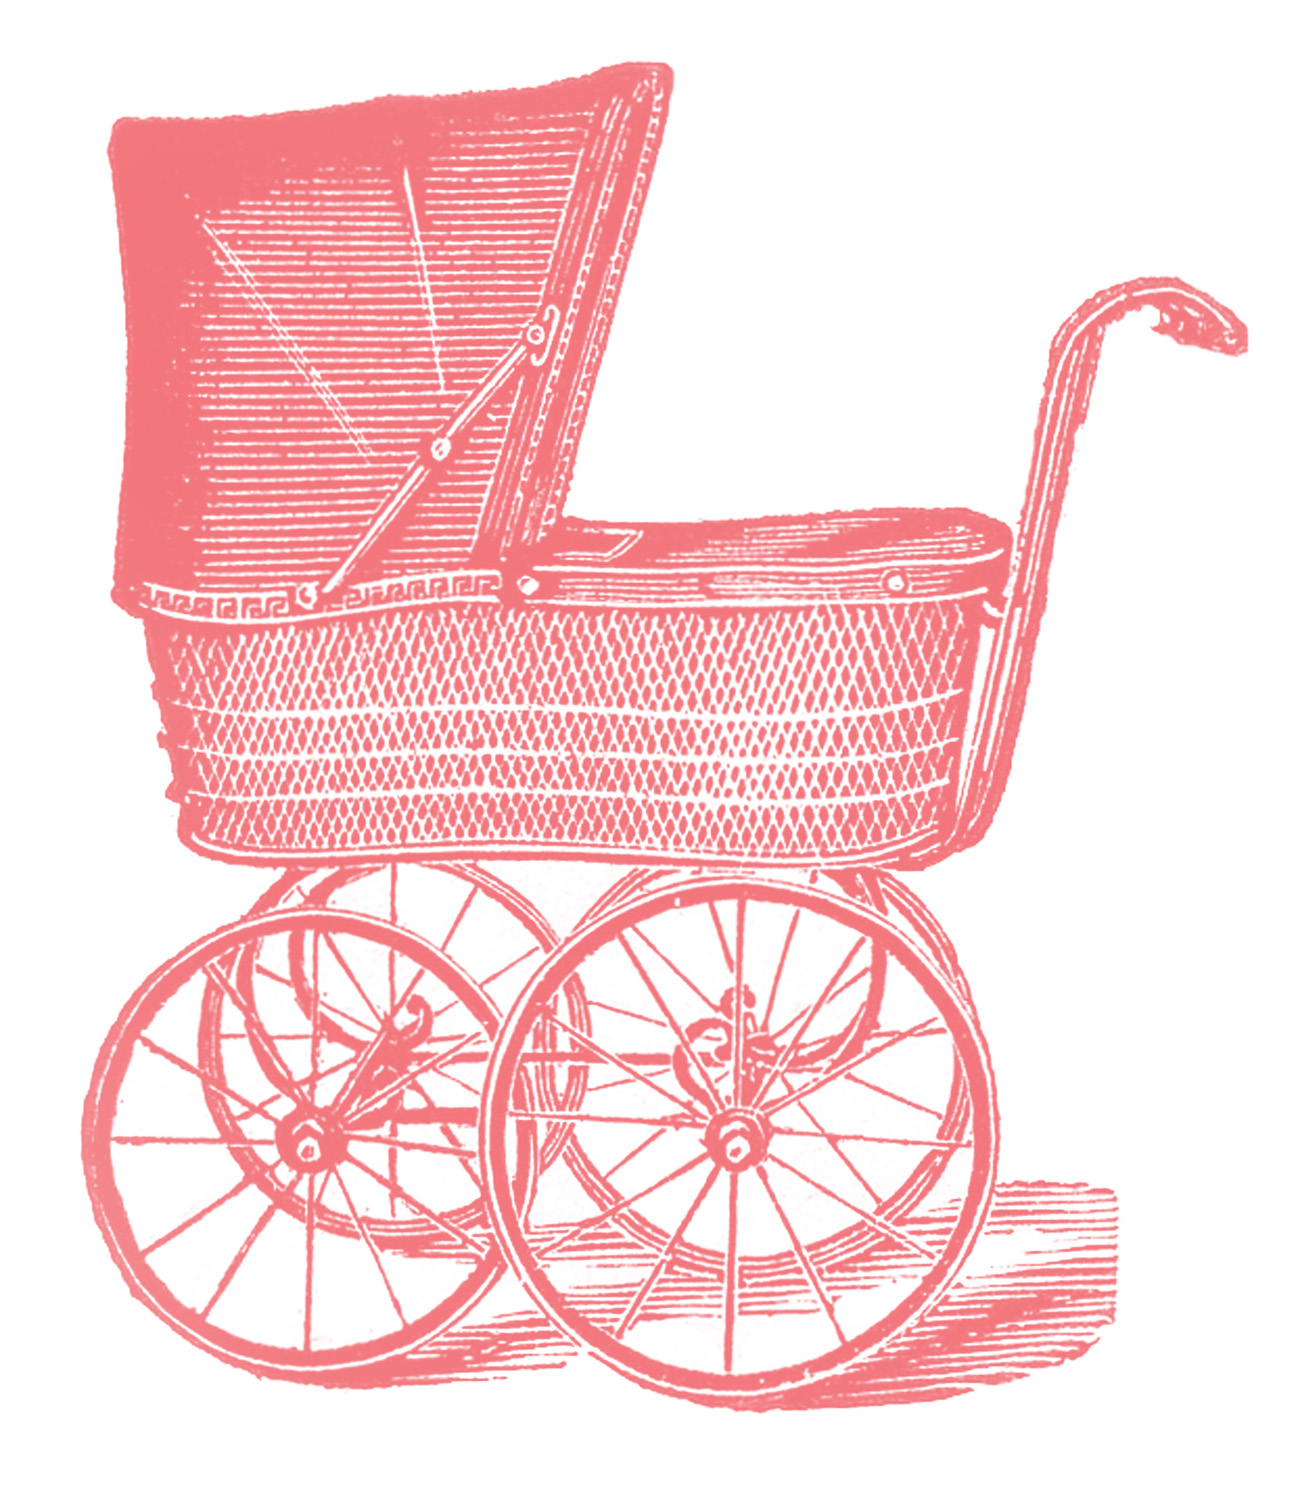 Royalty Free Images   Vintage Baby Carriages   The Graphics Fairy